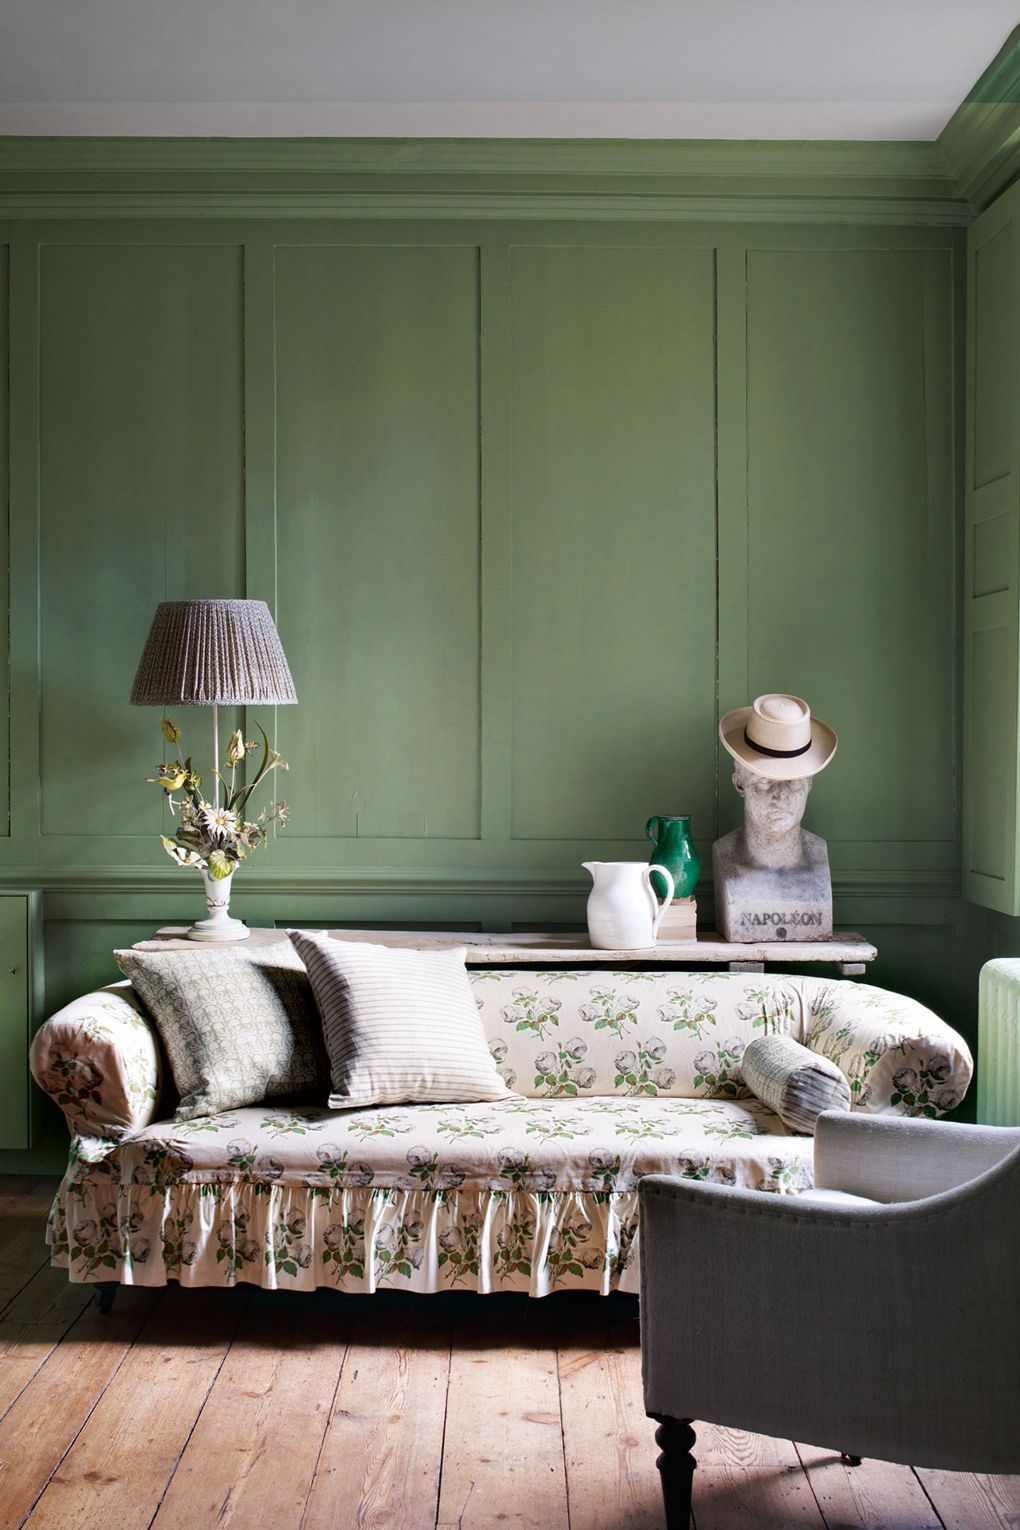 English Country Slipcover Sofa - Colefax und Fowler Bowood Print Slipcover Sofa mit Rüschenrock und Farrow and Ball Green Painted Wall